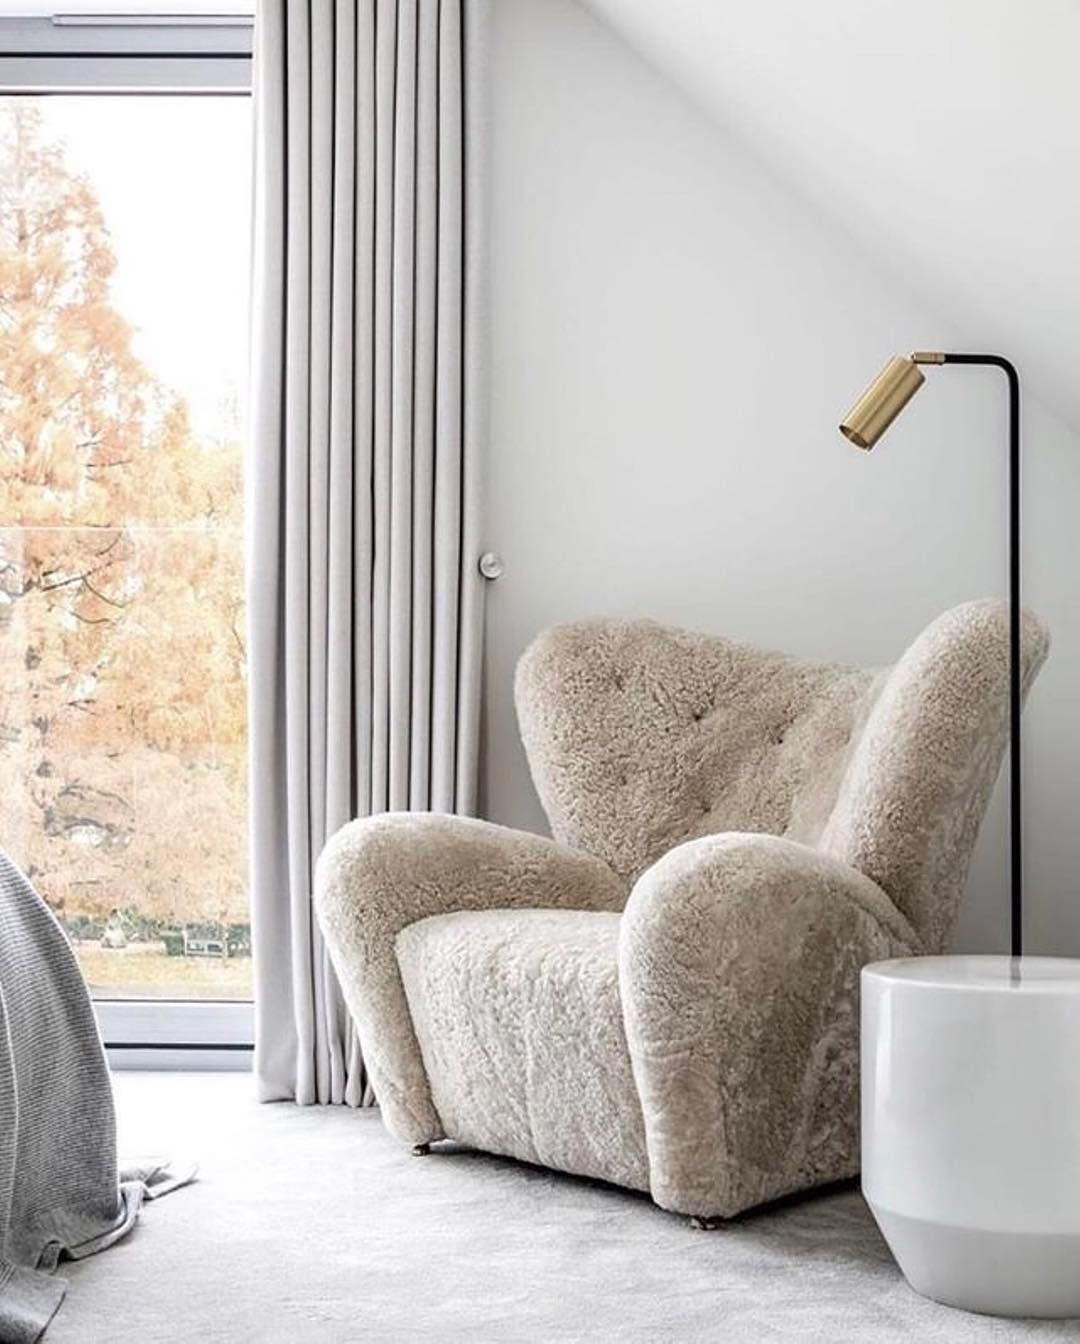 Luxe Design Fauteuil.Home Decor Is Always Essential Discover More Chair Inspirations